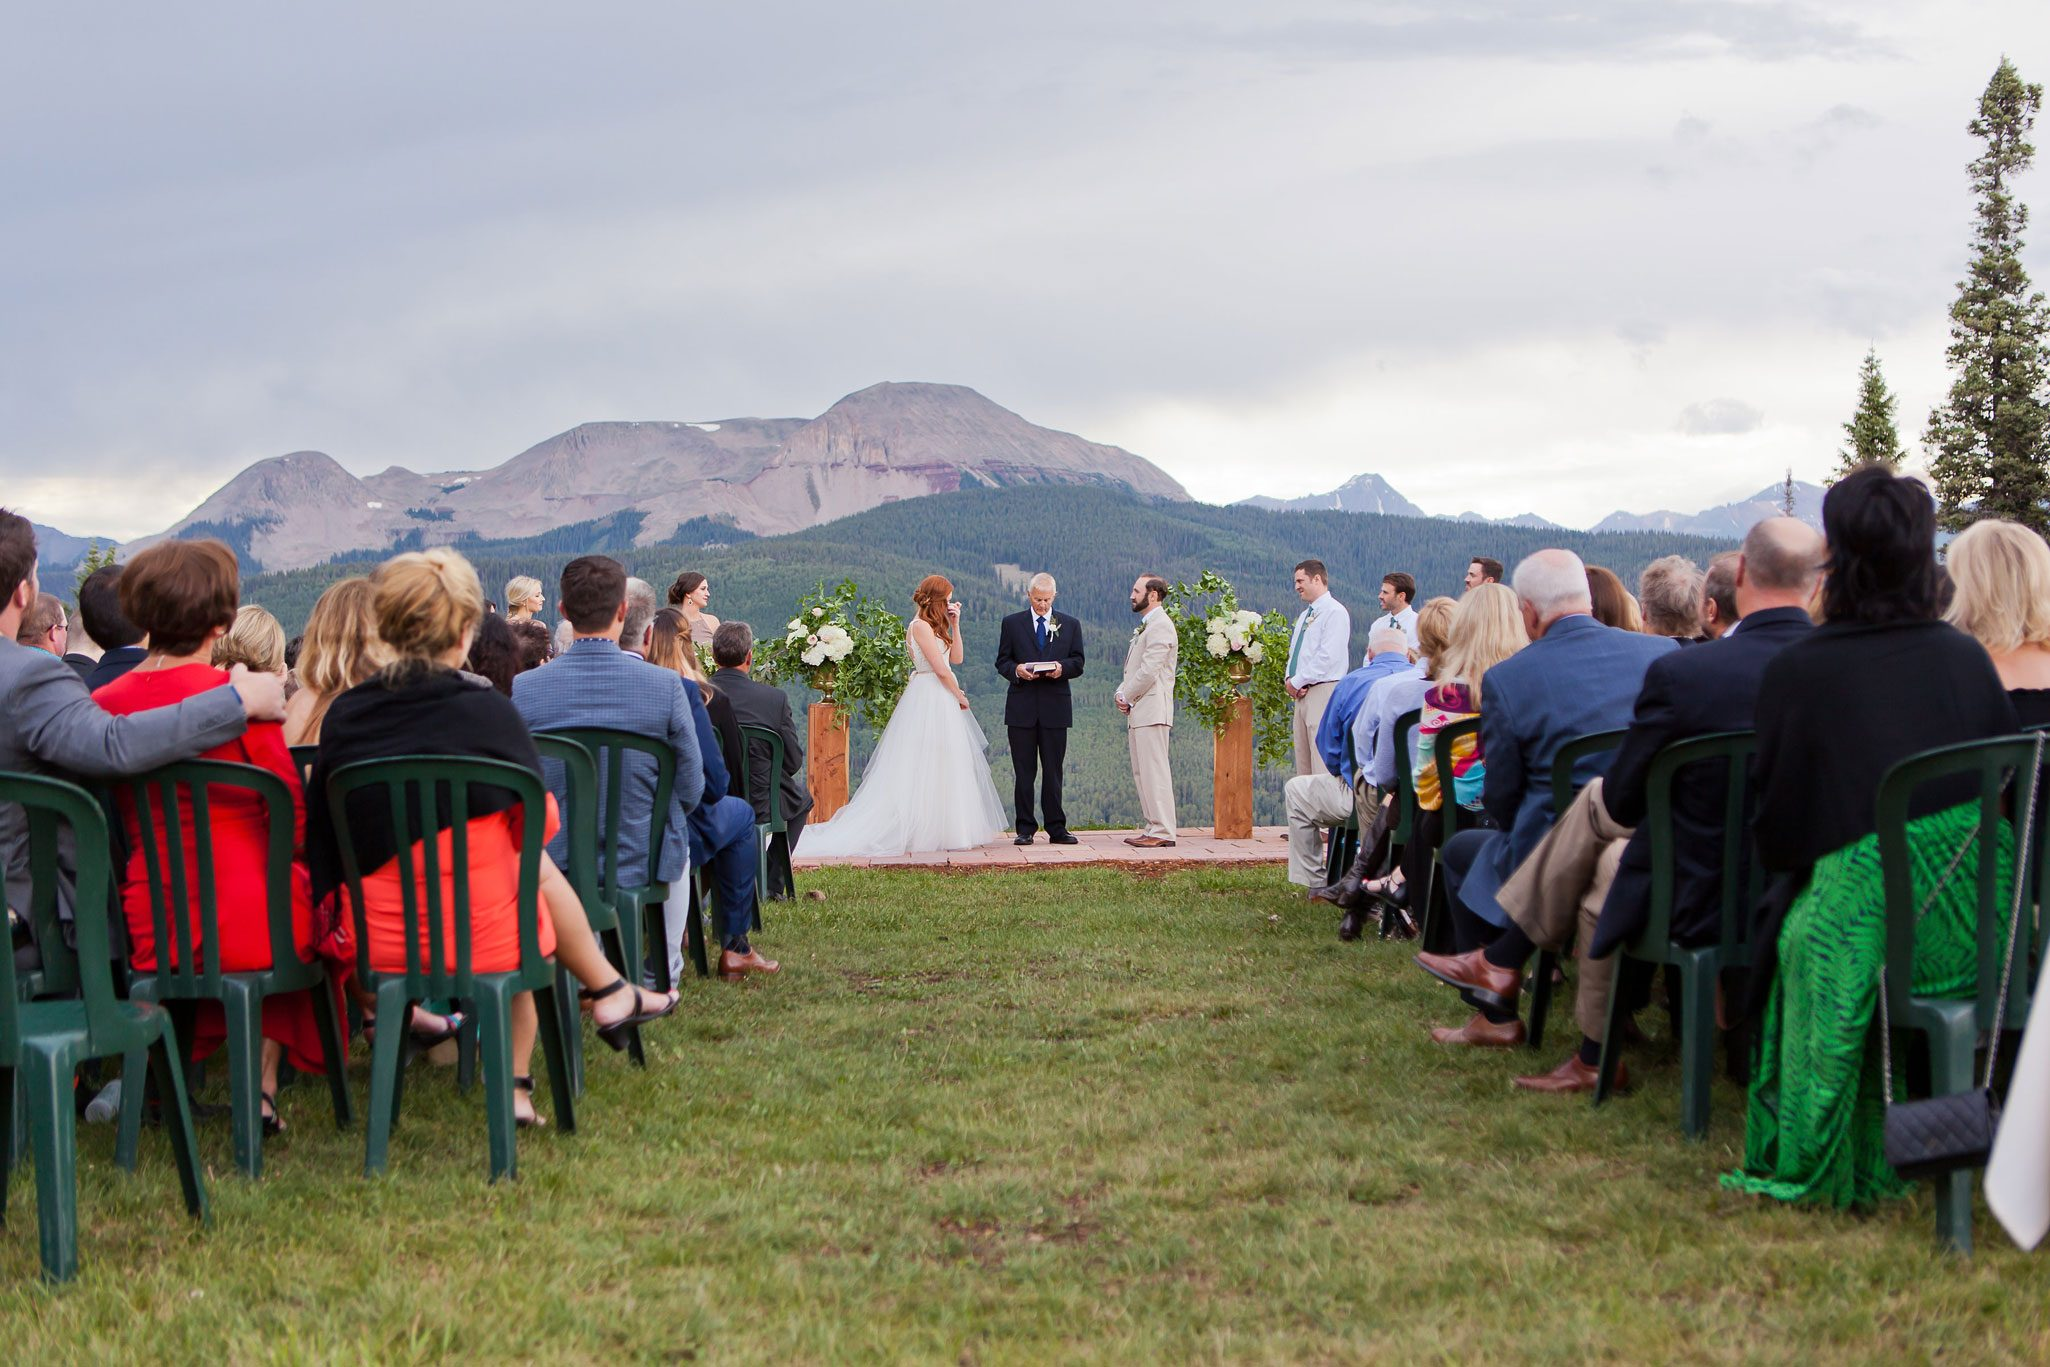 A Modern Mountaintop Ceremony at Purgatory Resort, Durango, Colorado